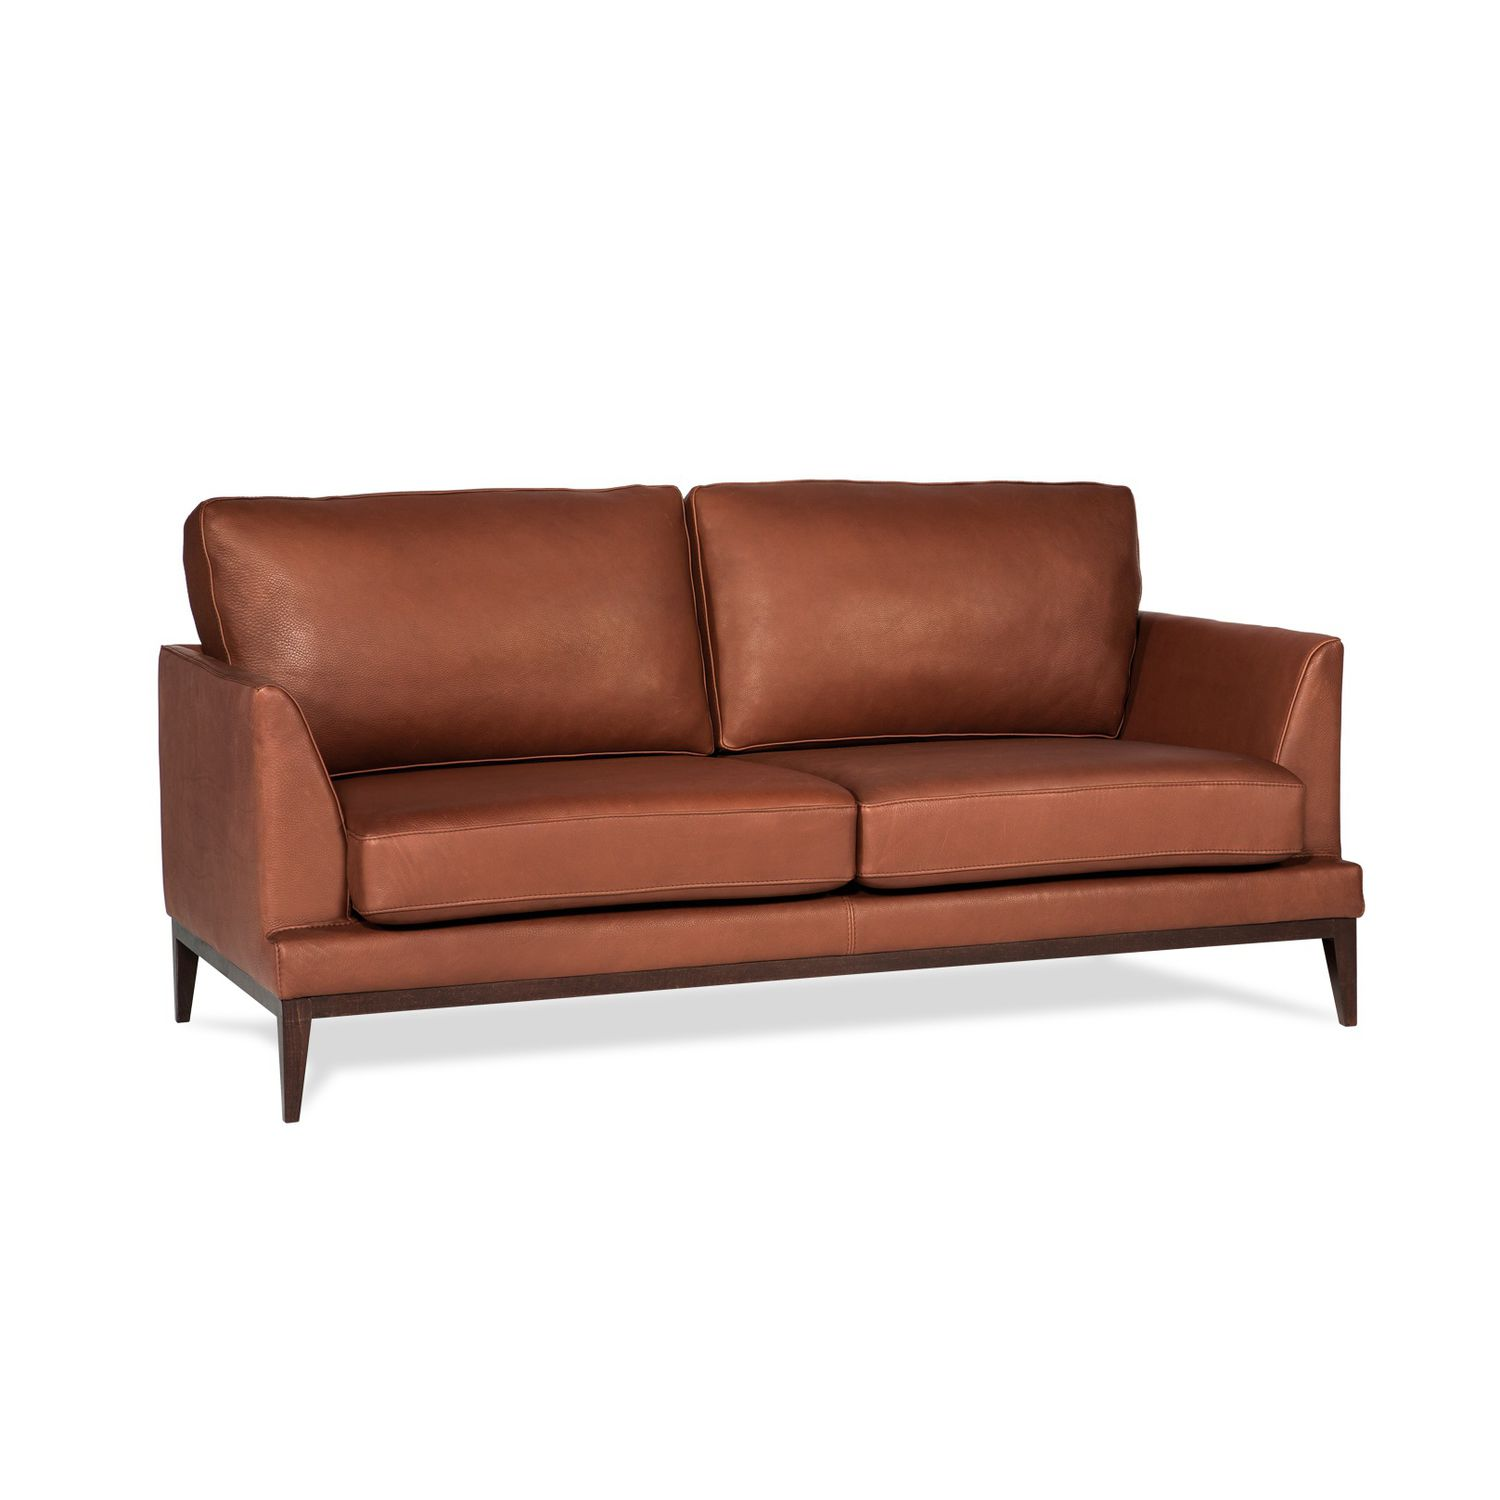 Image of: Contemporary Sofa Opera Neology Fabric Leather Contract